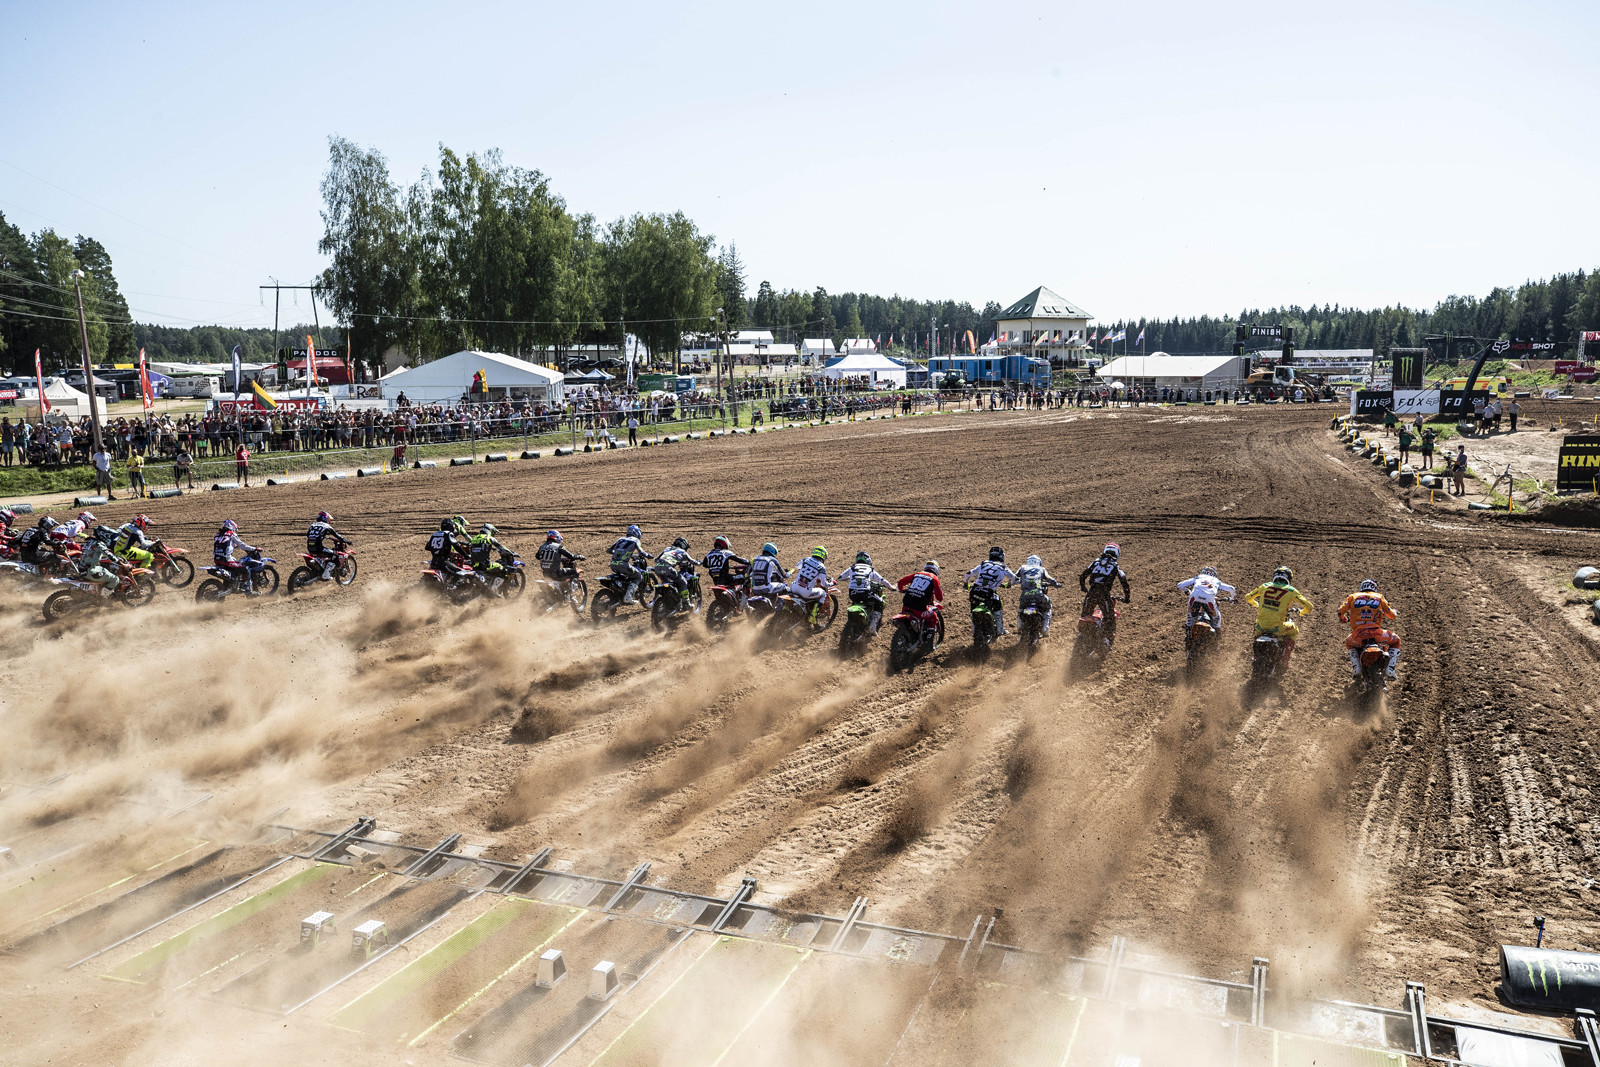 Three consecutive MXGPs at the Kegums circuit are in the books. Even with a similar layout each race, we saw three different overall winners in the MXGP class.